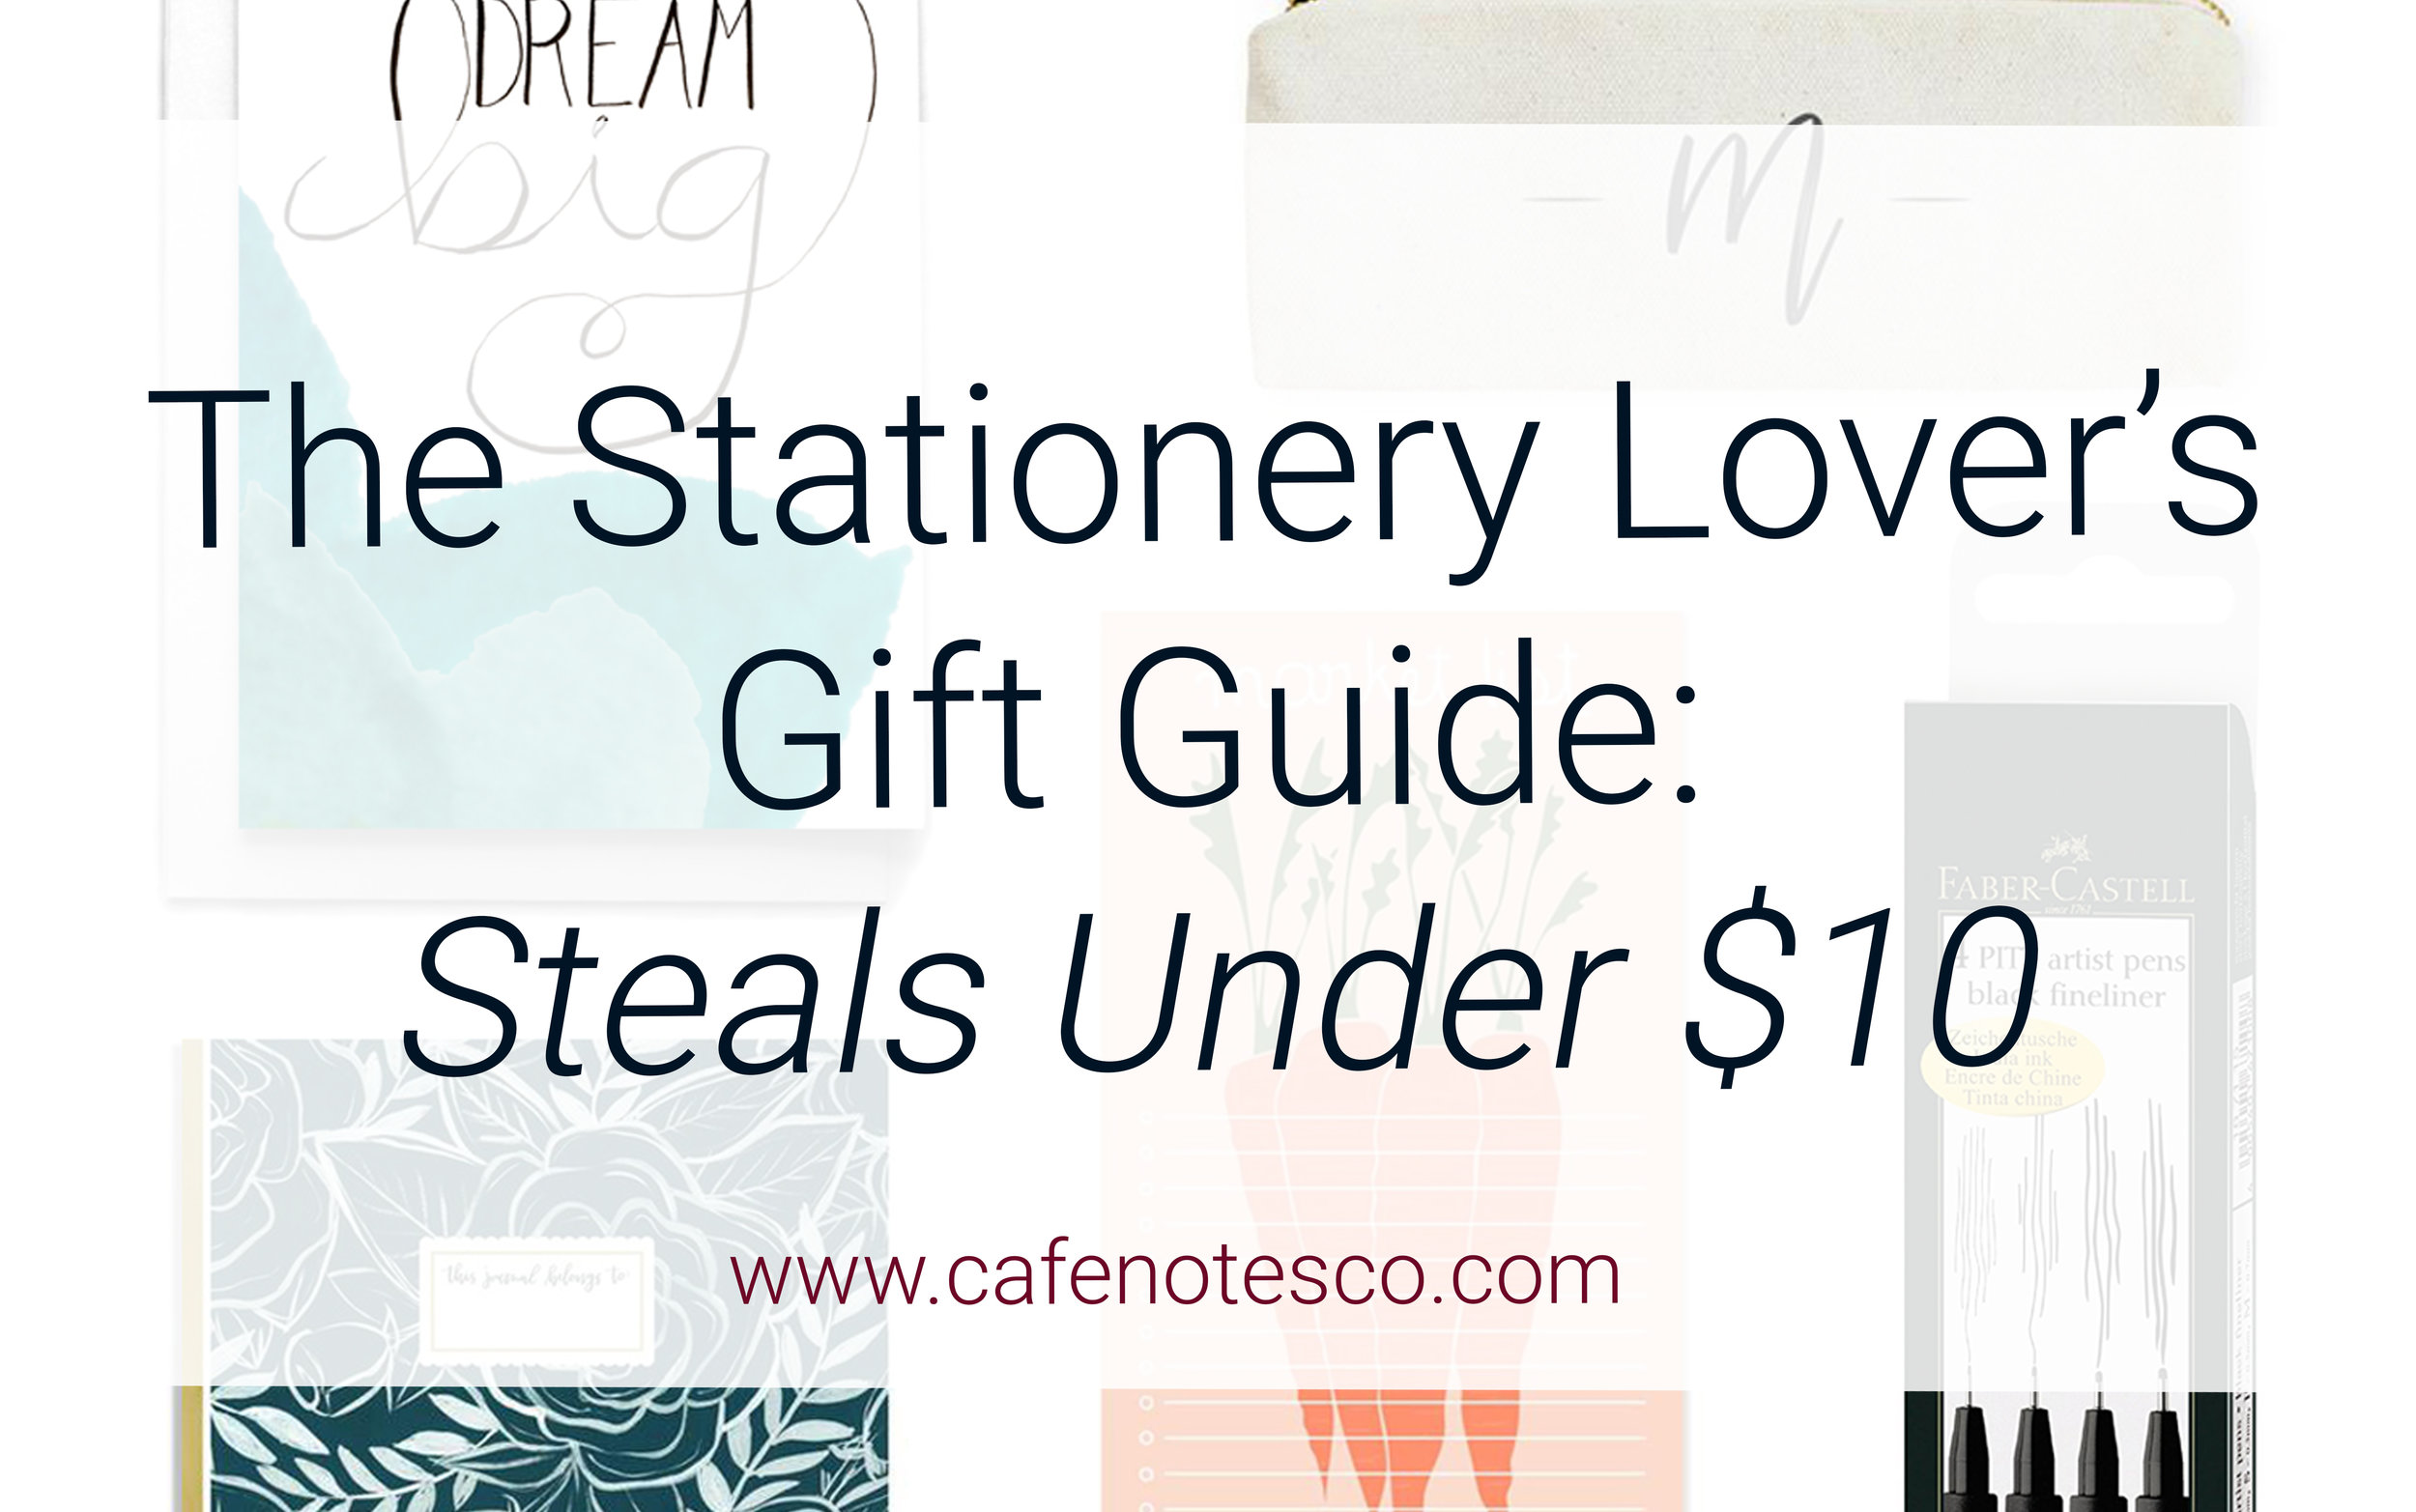 Cafe Notes + Company Stationery Lover's Gift Guide Steals Under $10.jpg